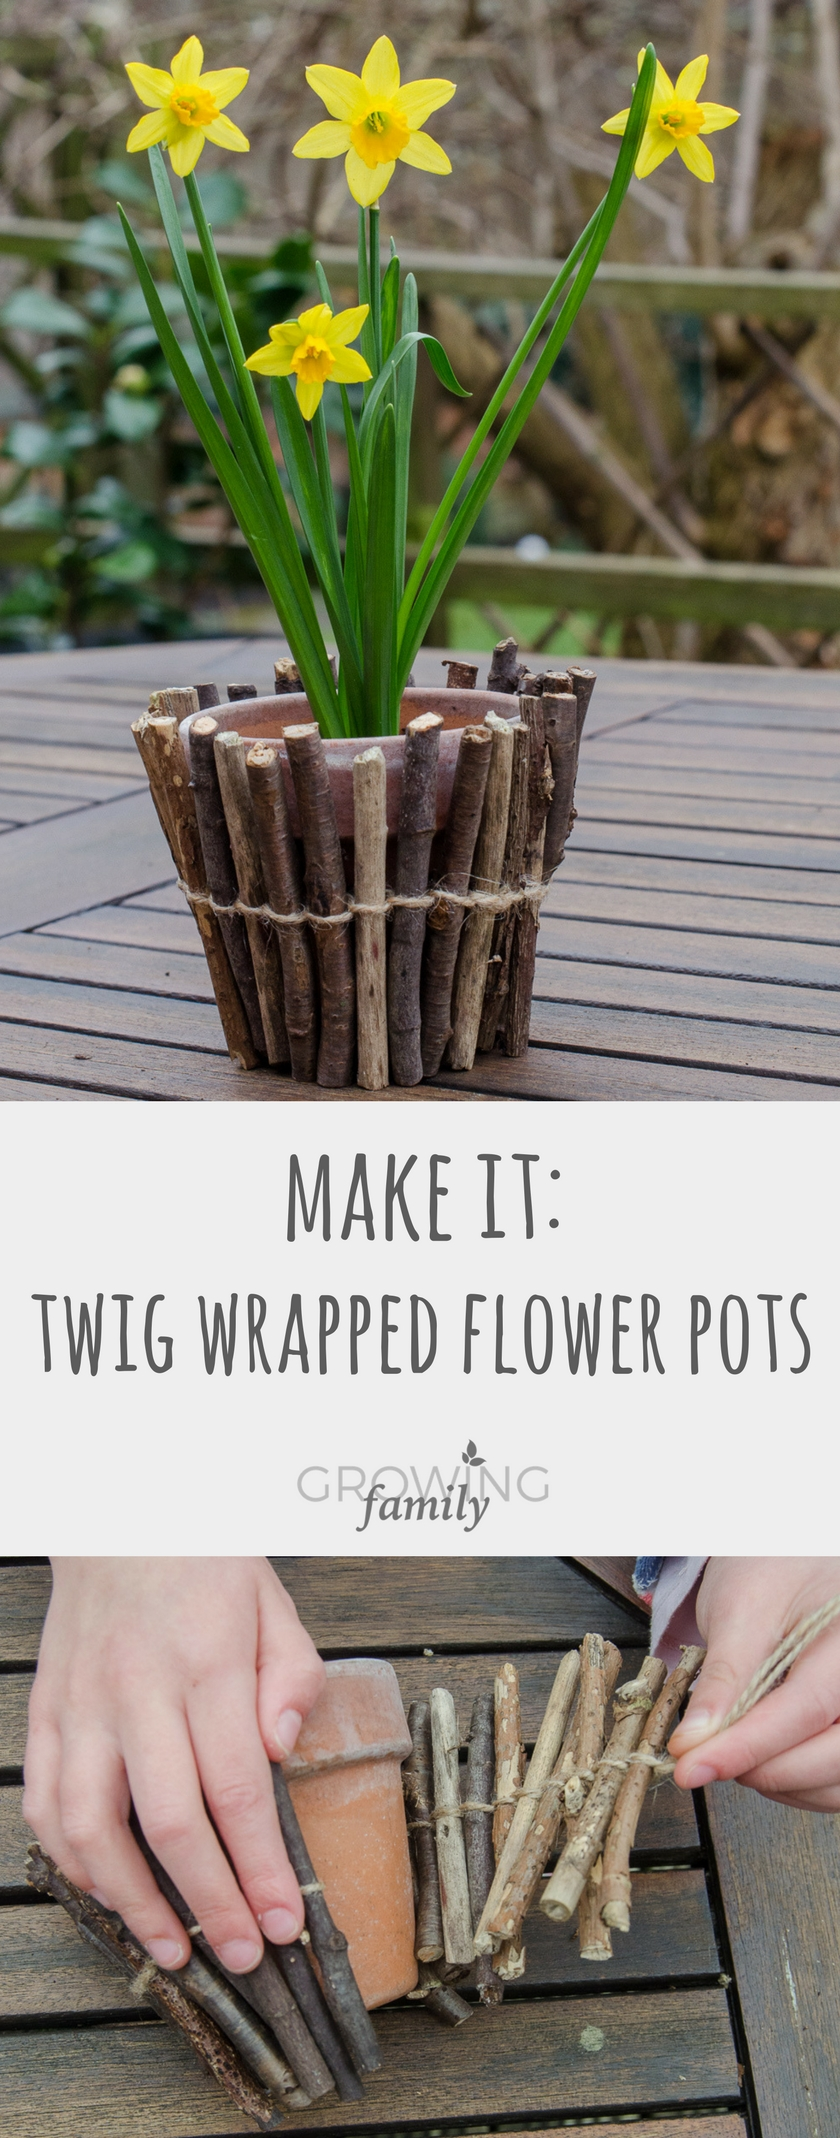 How to make your own twig wrapped flower pots - a simple and fun nature activity & How to make twig-wrapped flower pots - Growing Family